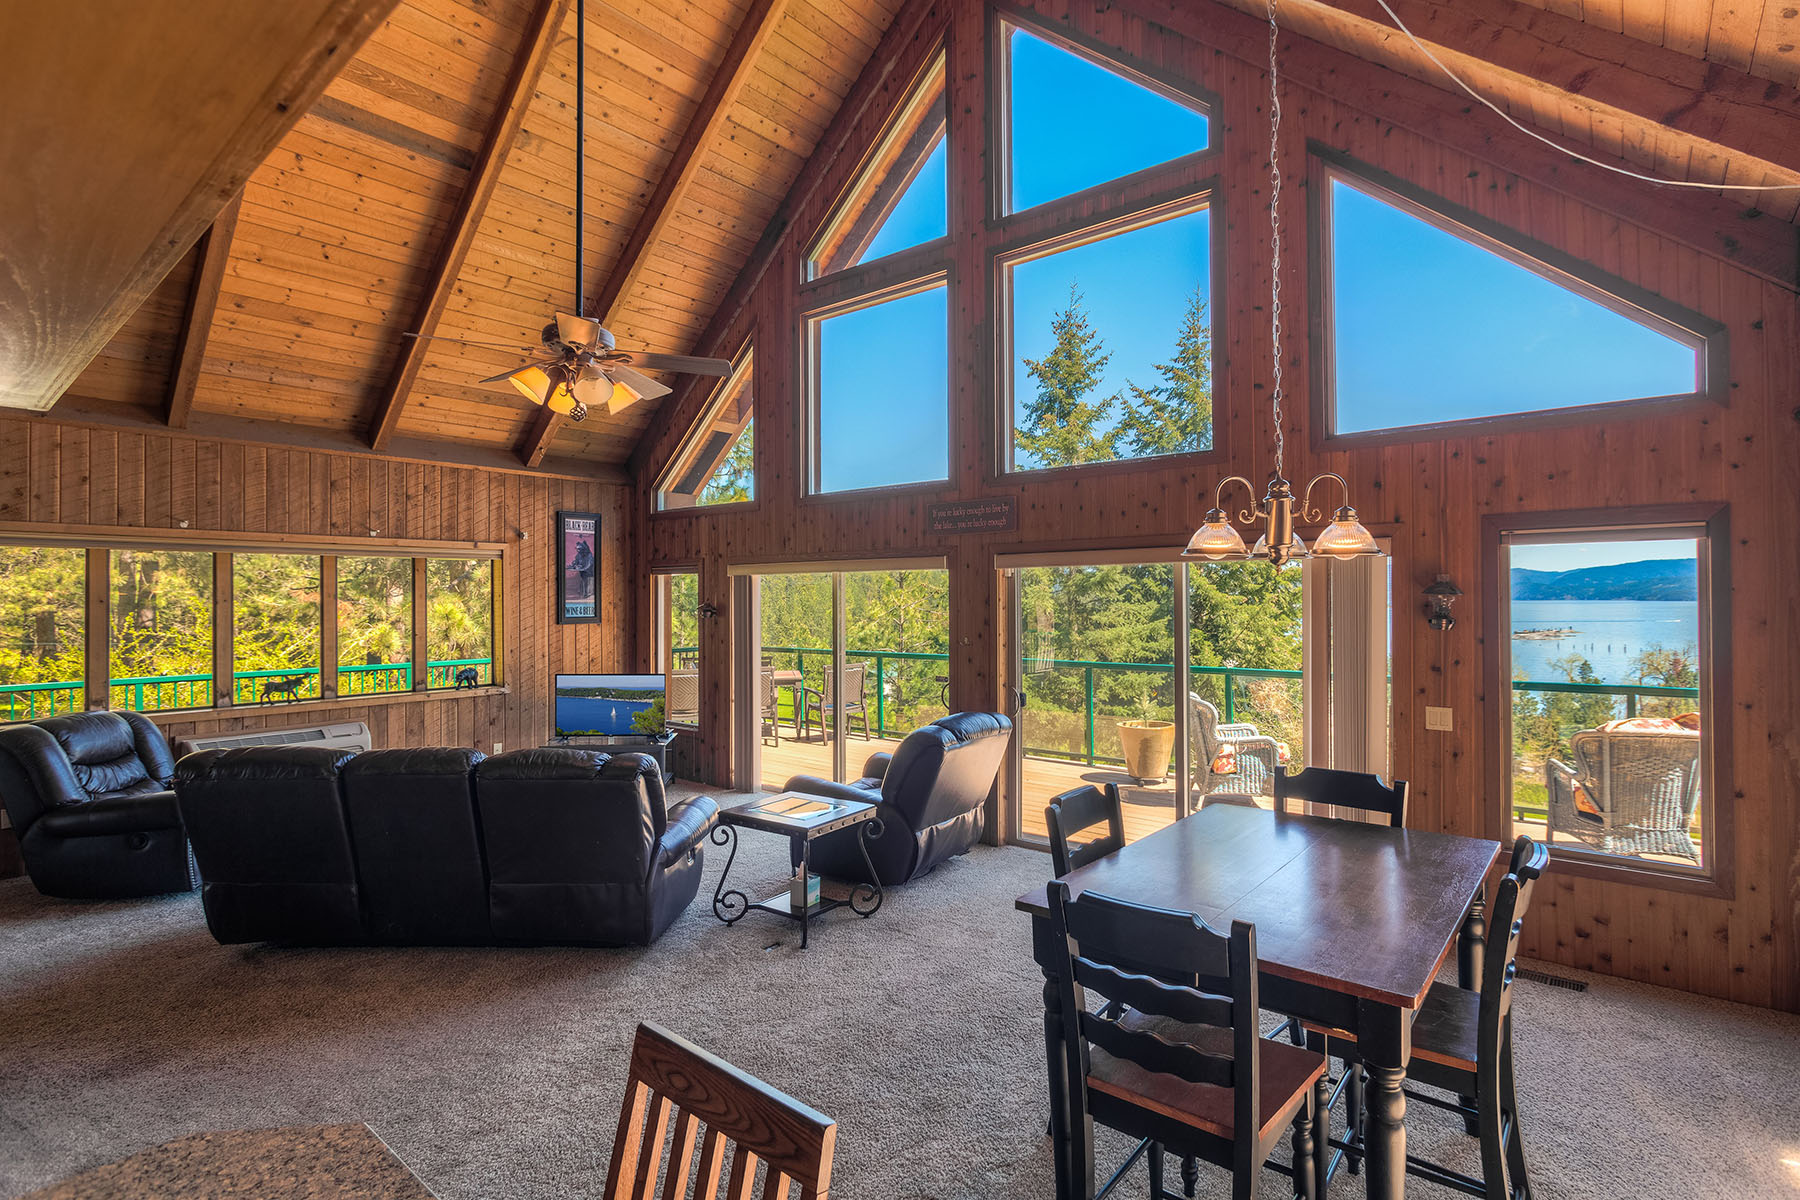 Single Family Home for Sale at Stunning Lake views on 5 acres 2740 W Summer Mill Ln Coeur D Alene, Idaho 83814 United States